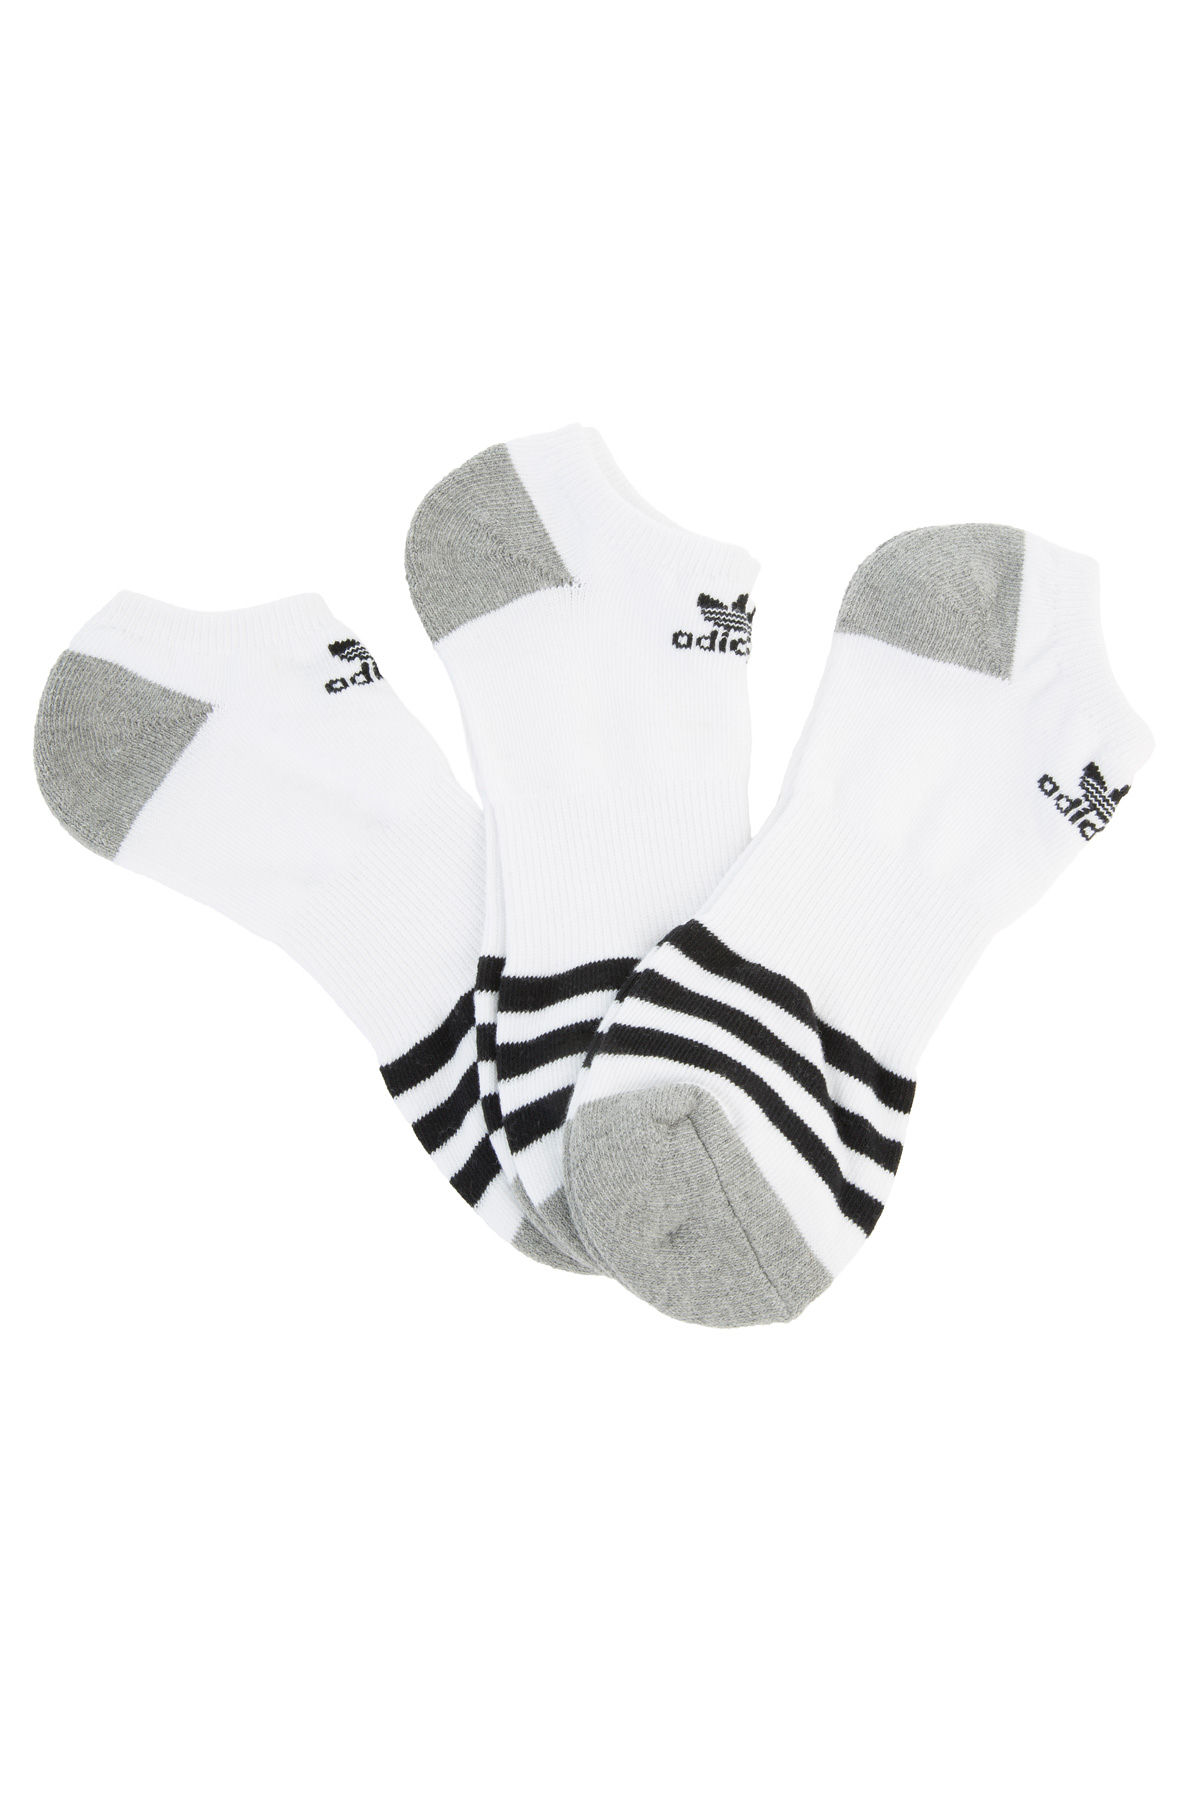 Image of The Men'S Orginals Roller 3-Pack No Show in White